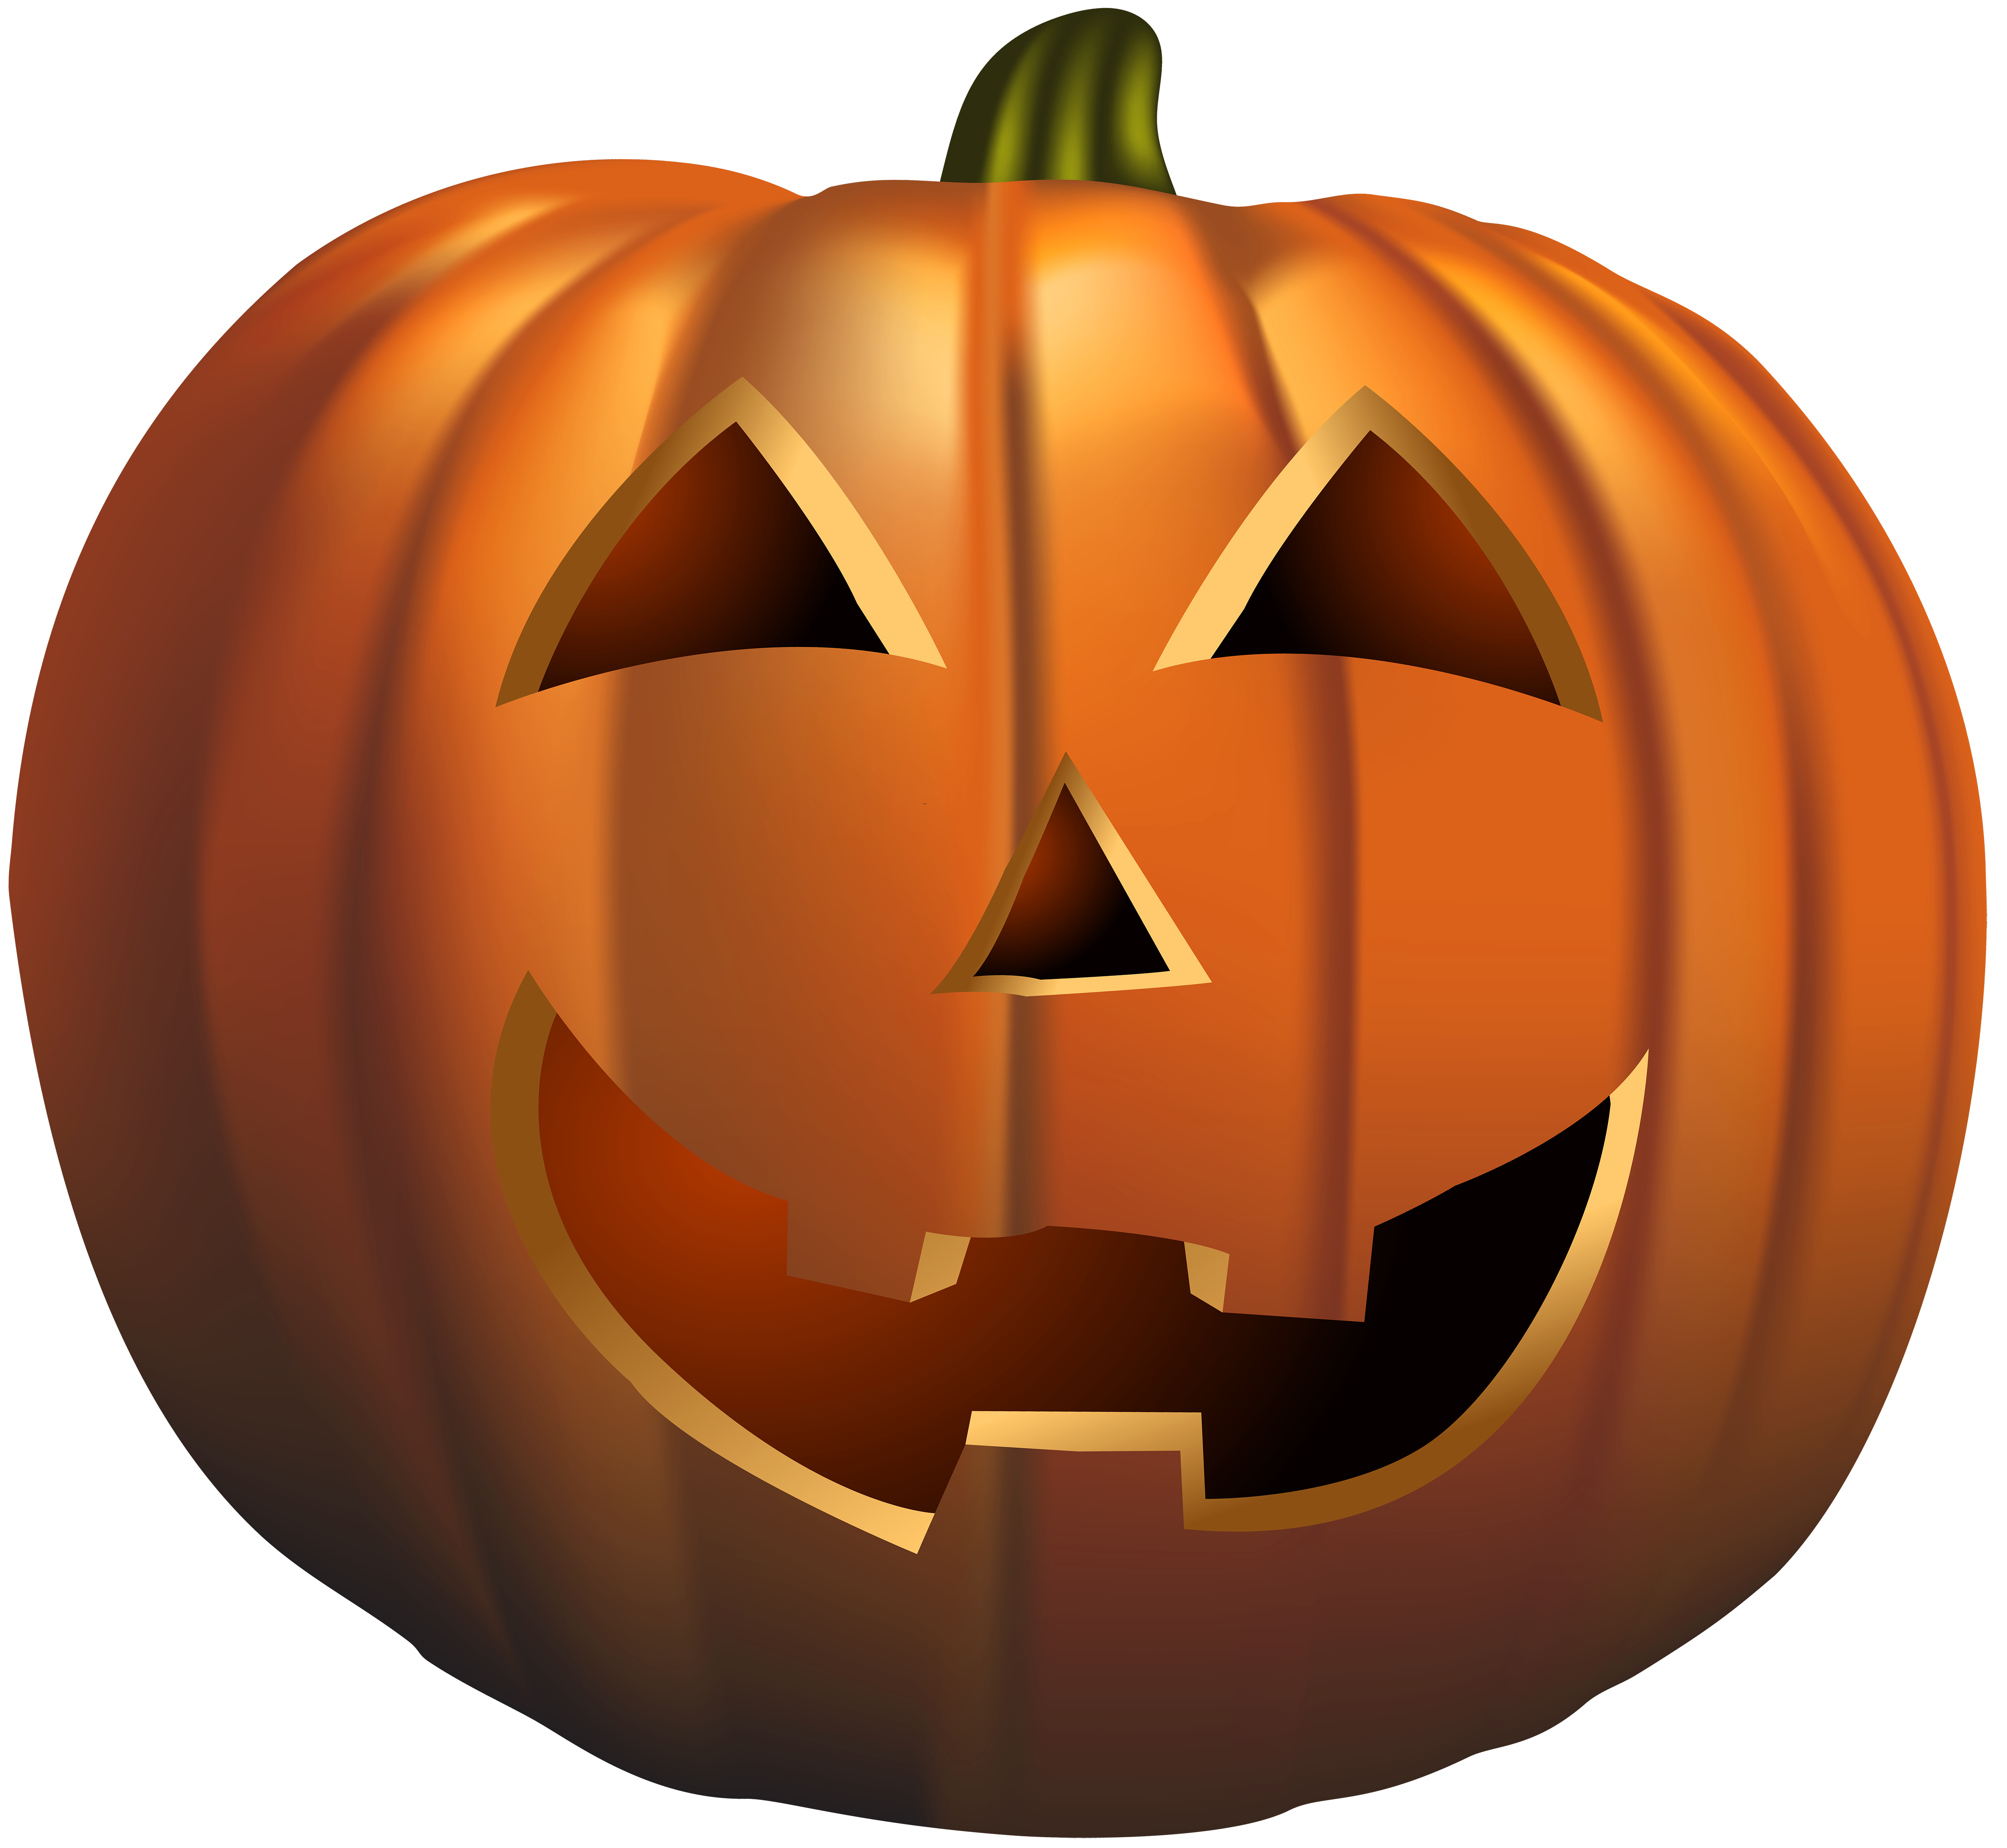 Free family pumpkin clipart picture freeuse download Jack-o'-lantern Calabaza Pumpkin Clip art - Halloween Pumpkin PNG ... picture freeuse download